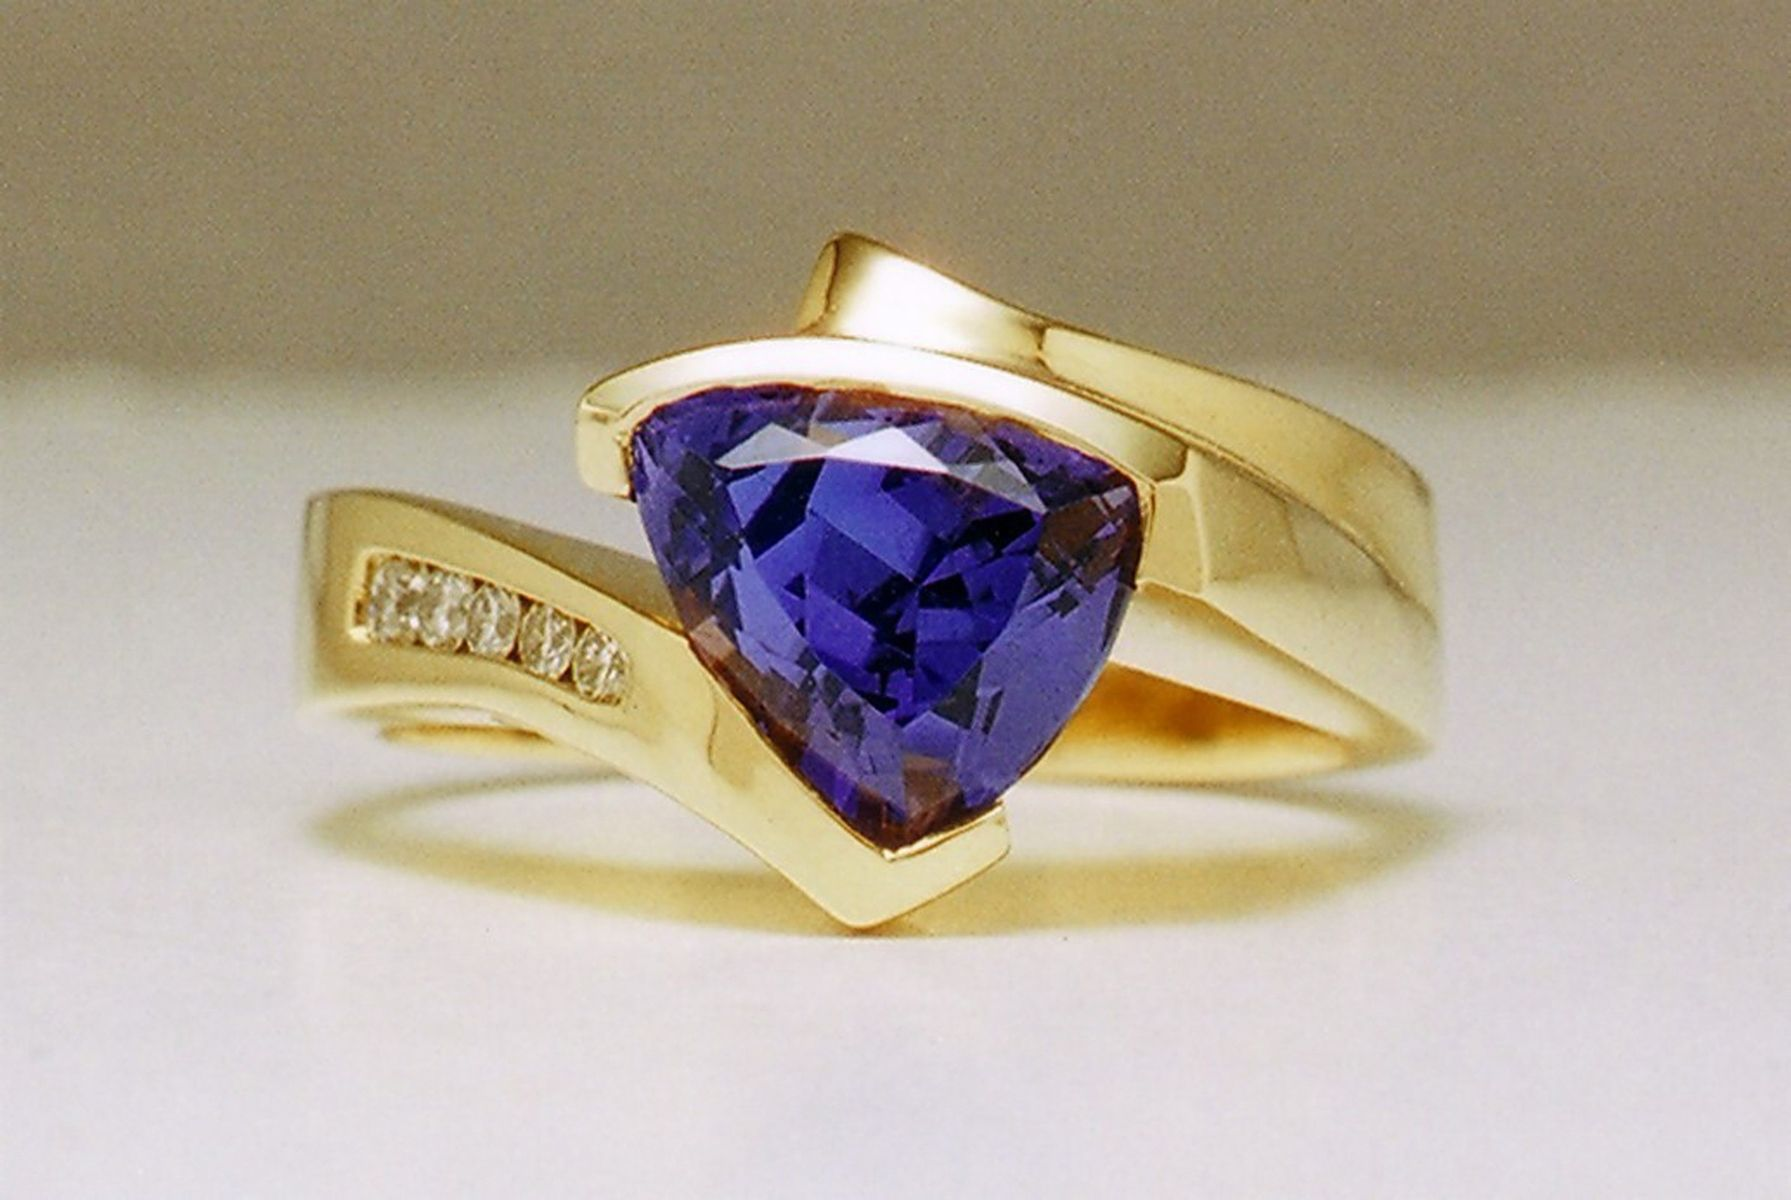 sapphire selling for tanzanite rings elegant silver quality from bands top item fine woman the in zirconium stones cz engagement aaa sterling best jewelry